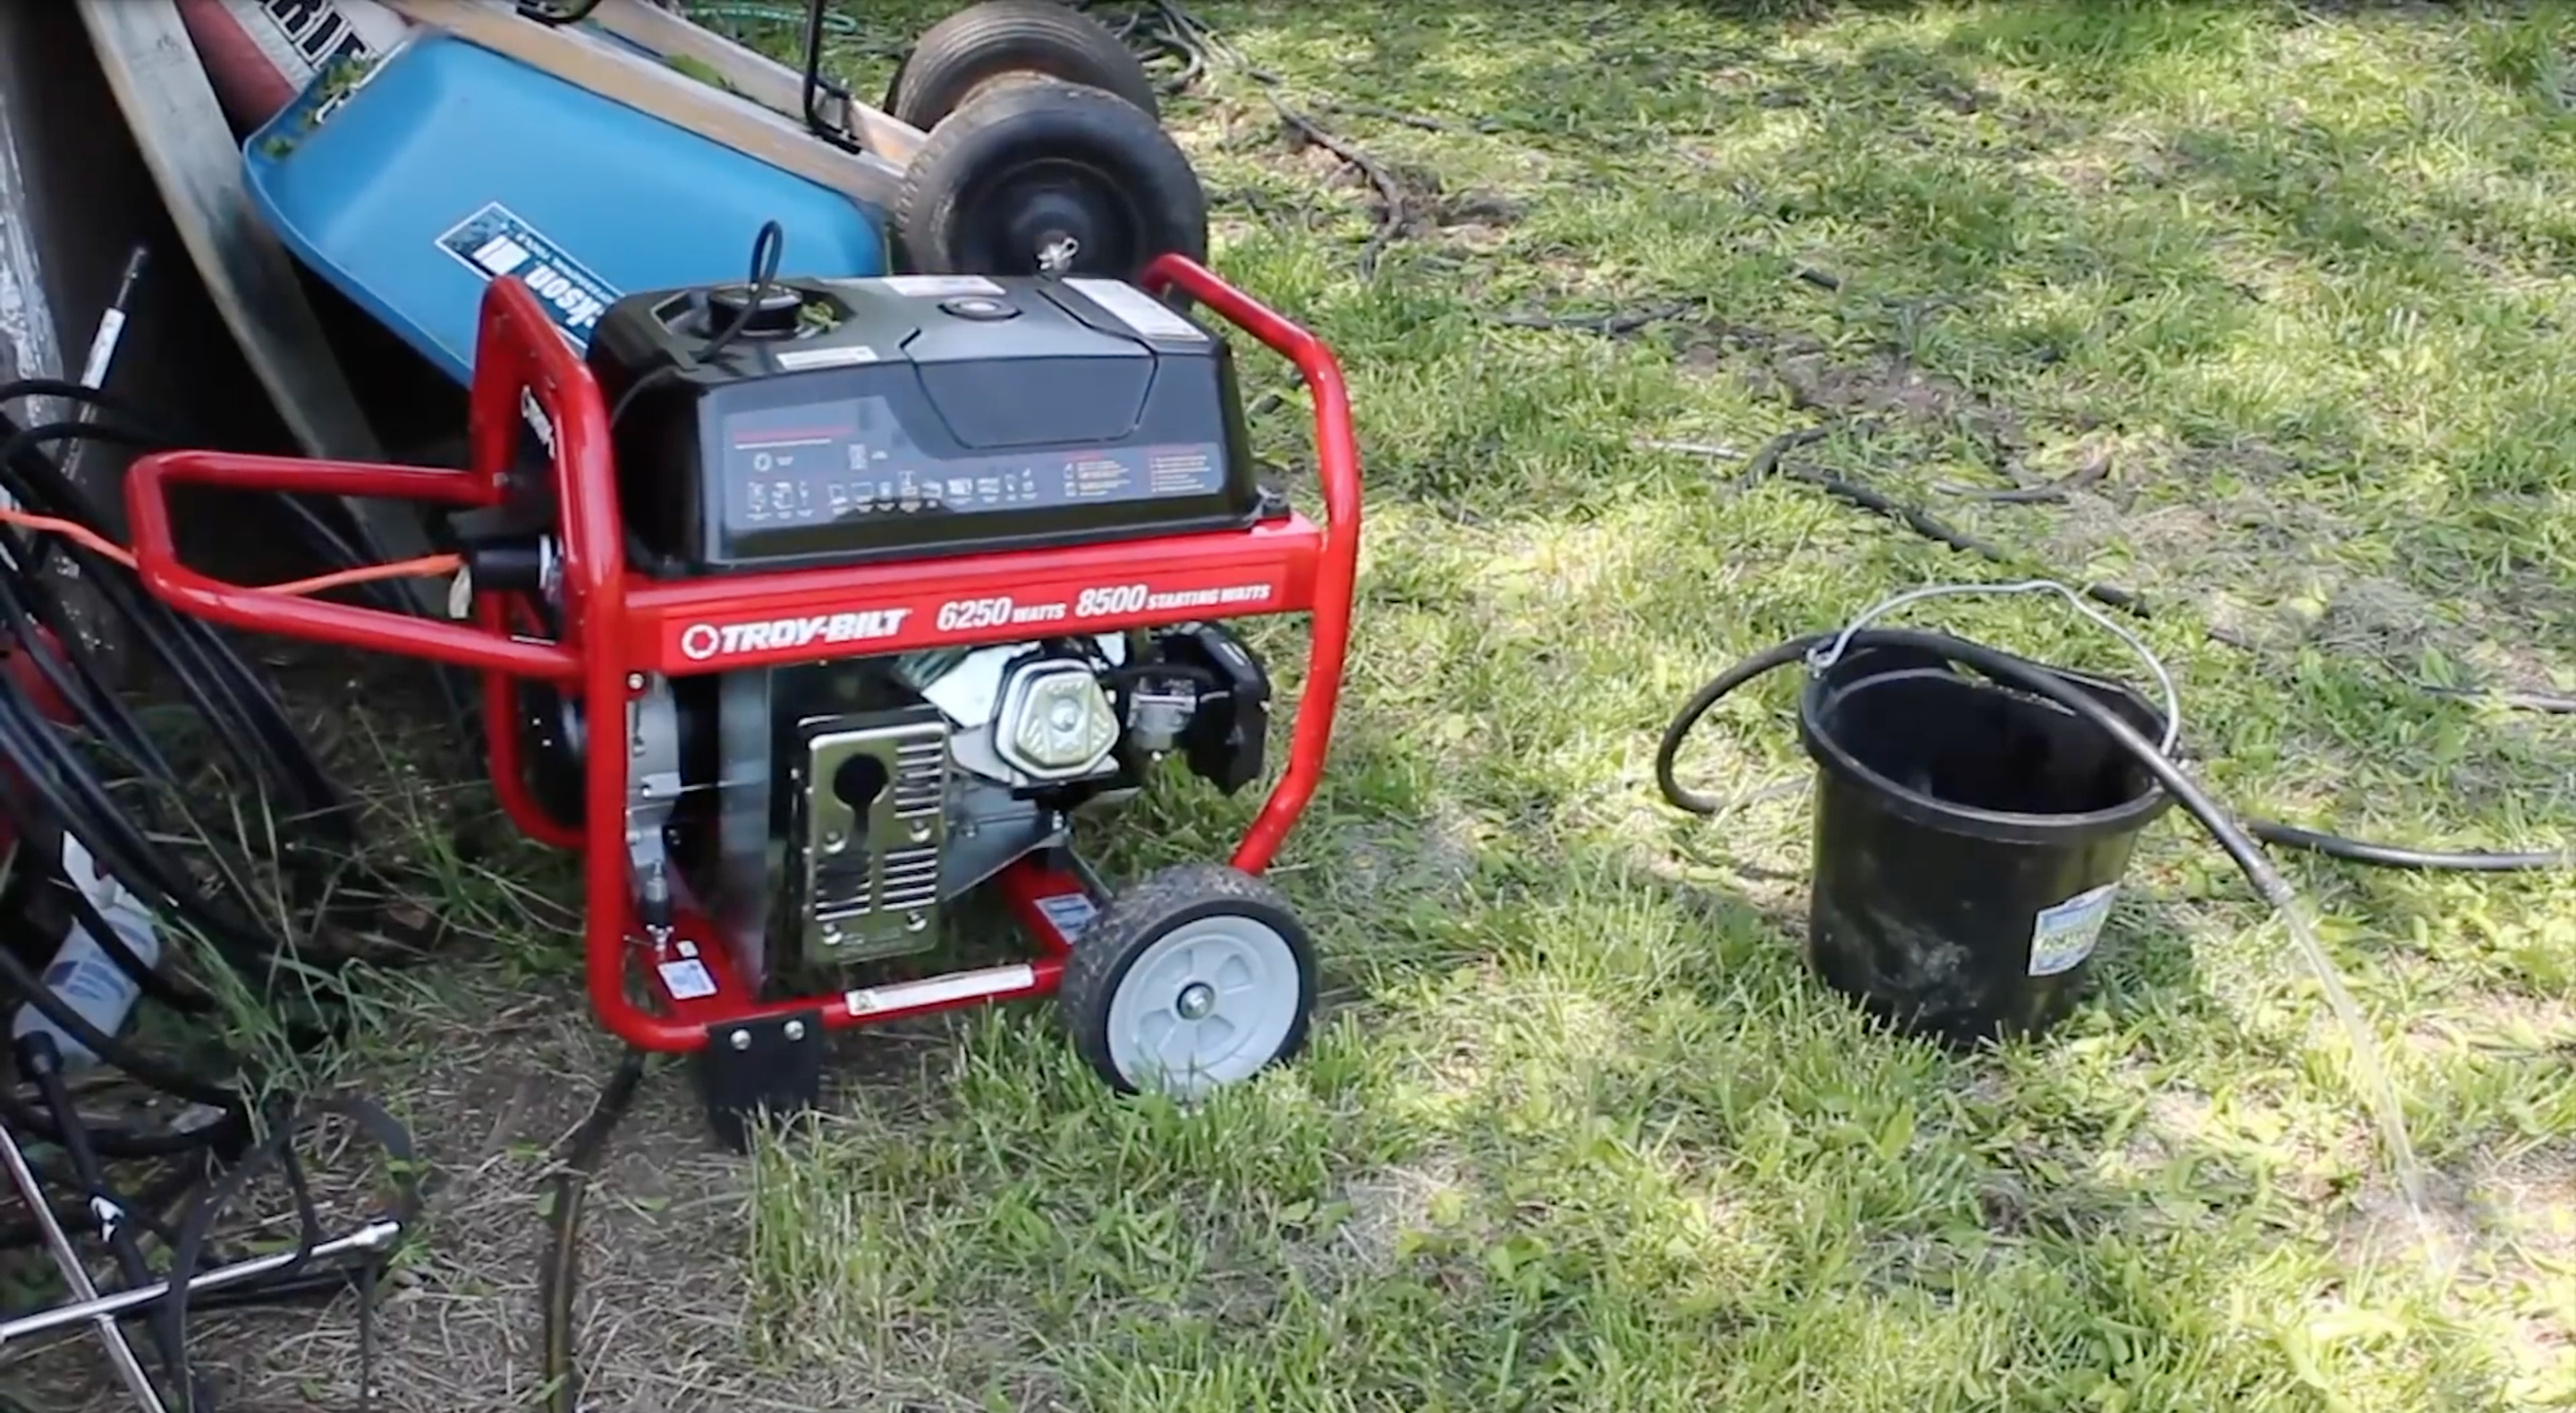 How to run a Submersible Well Pump off a portable generator.